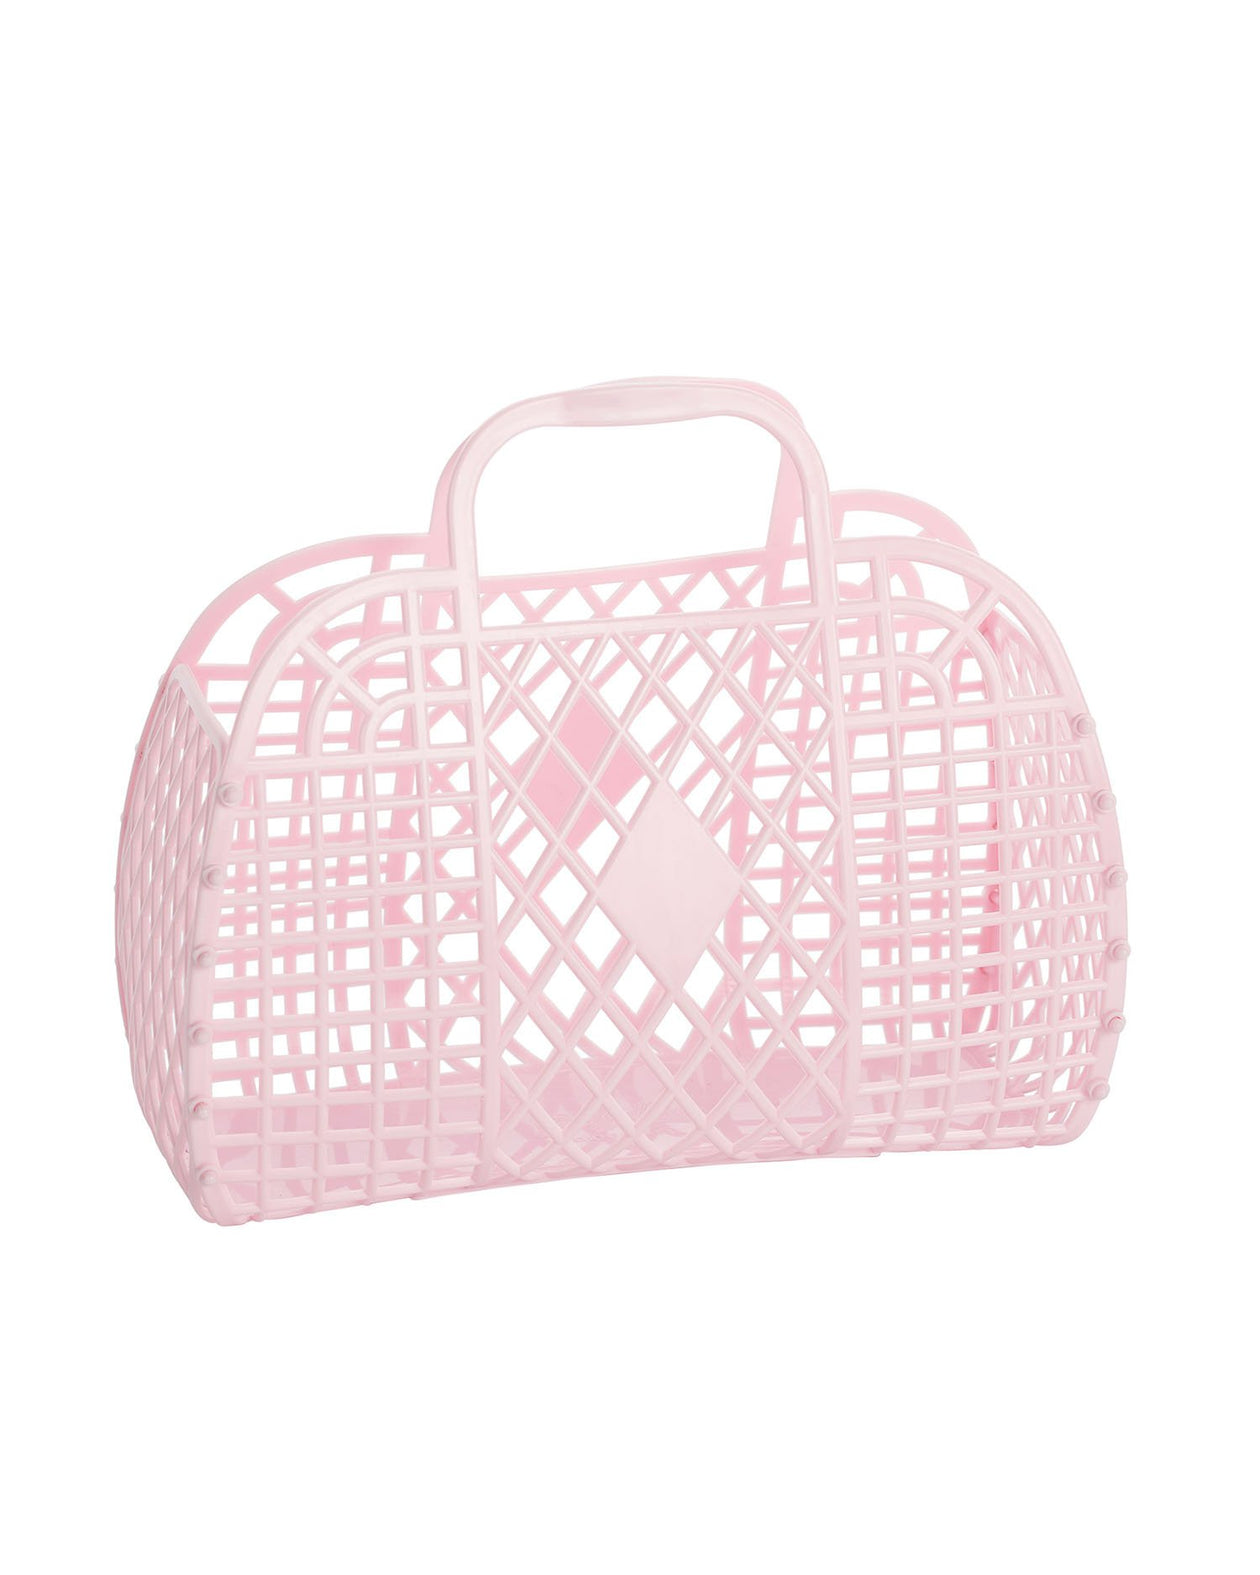 Retro Basket- Pink | Sun Jellies Kids Handbag